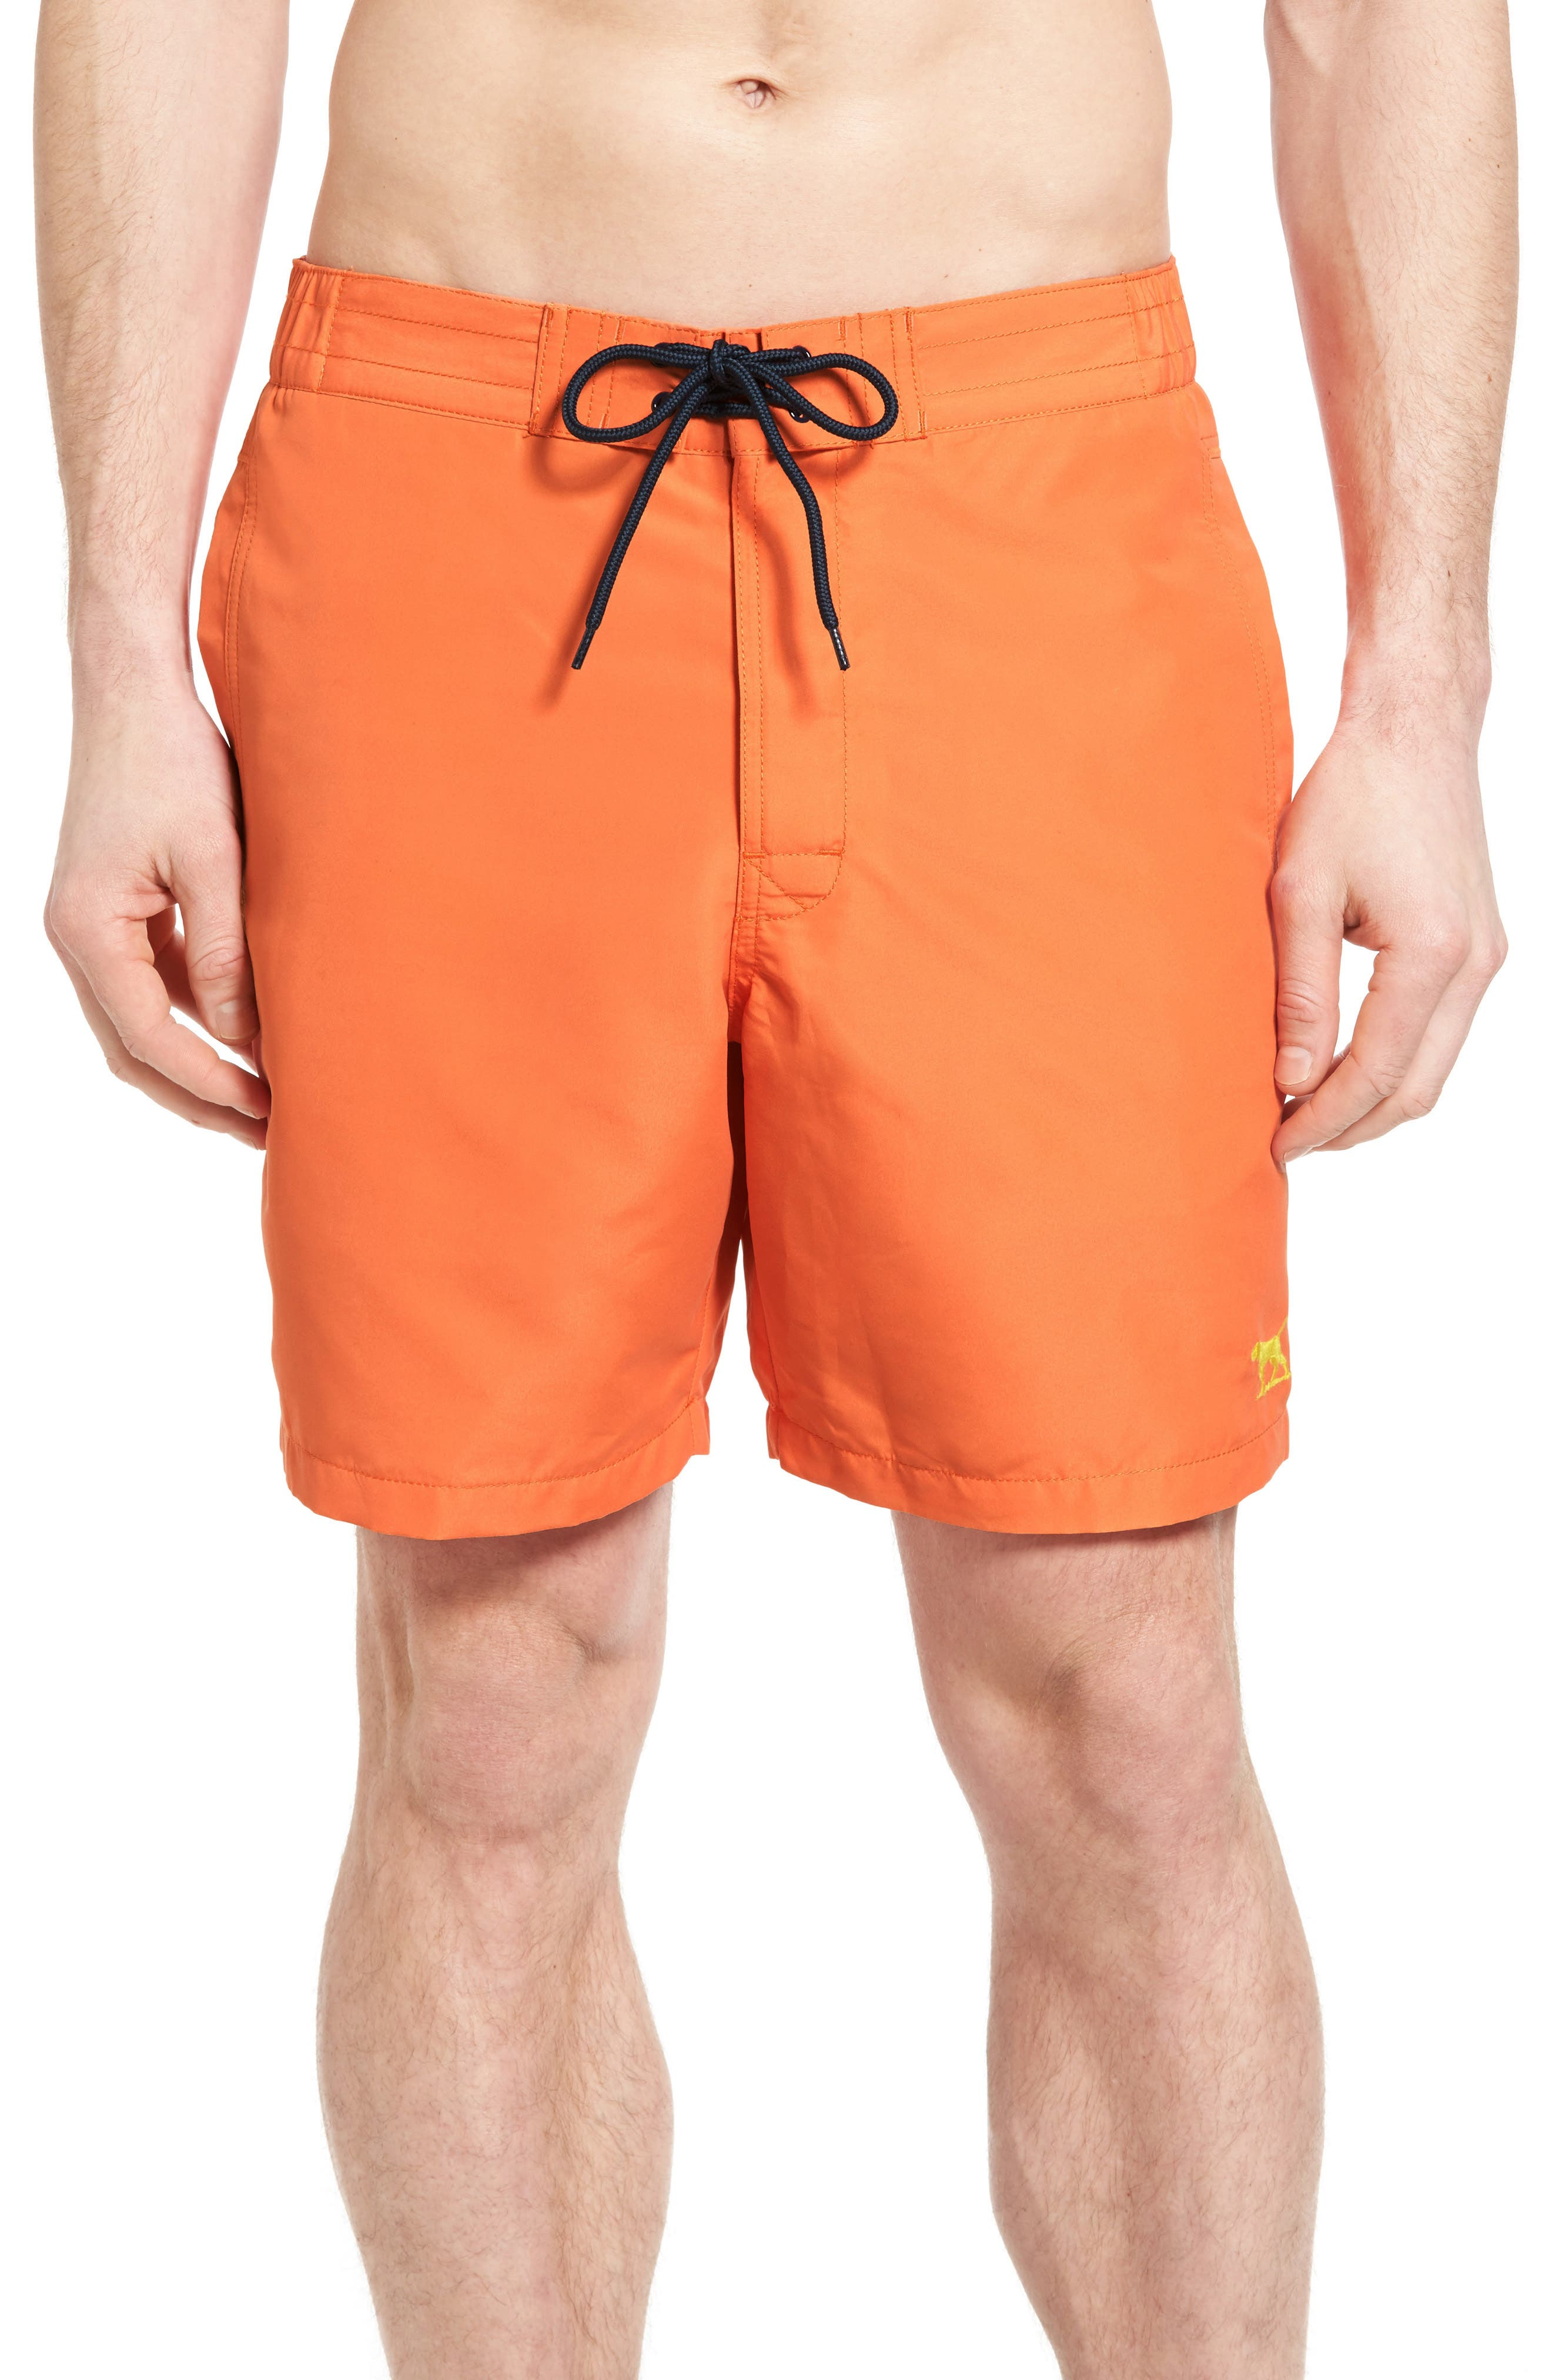 Rodd & Gunn Glen Innes Swim Trunks